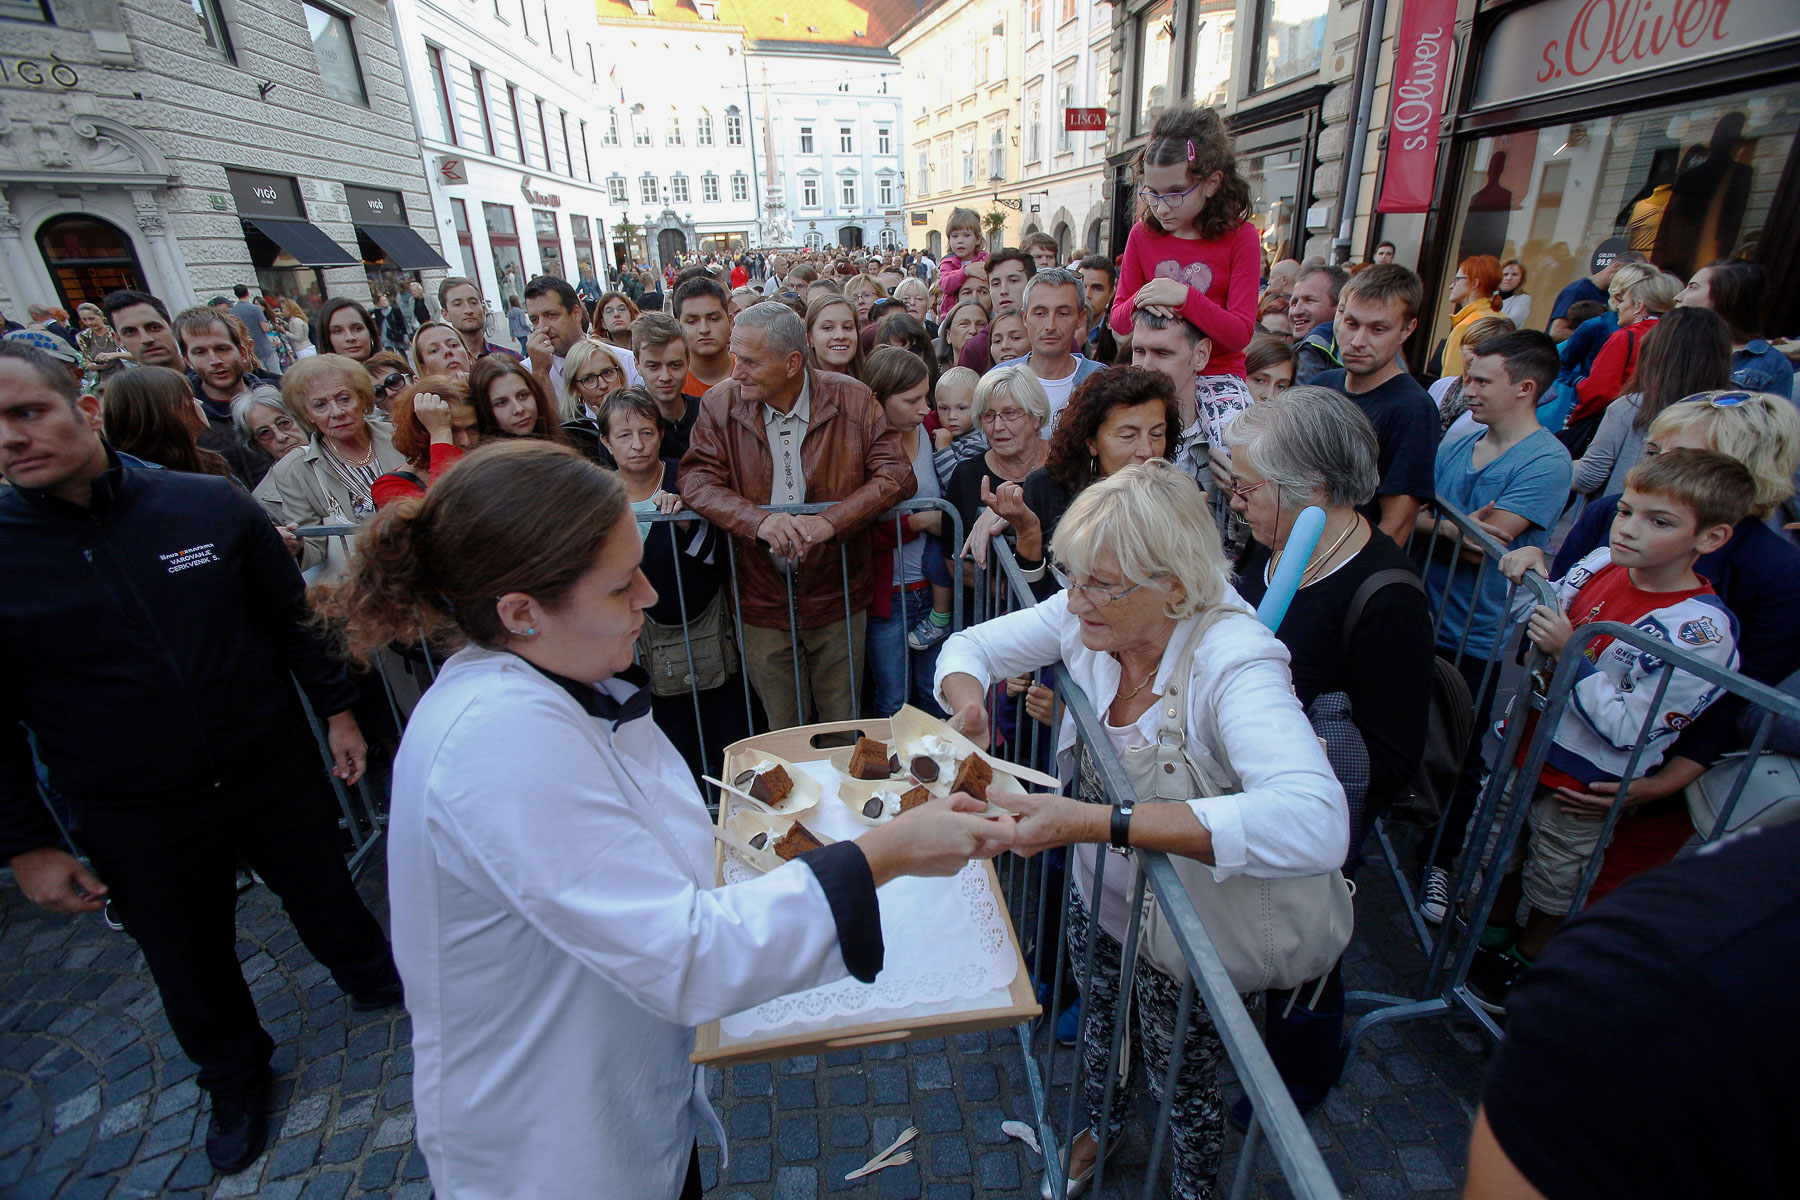 The world's largest original Sacher-torte is served in Ljubljana, Slovenia, Sept. 21, 2016. The largest original Sacher-cake was made to mark the ending of the Vienna Days in Ljubljana.